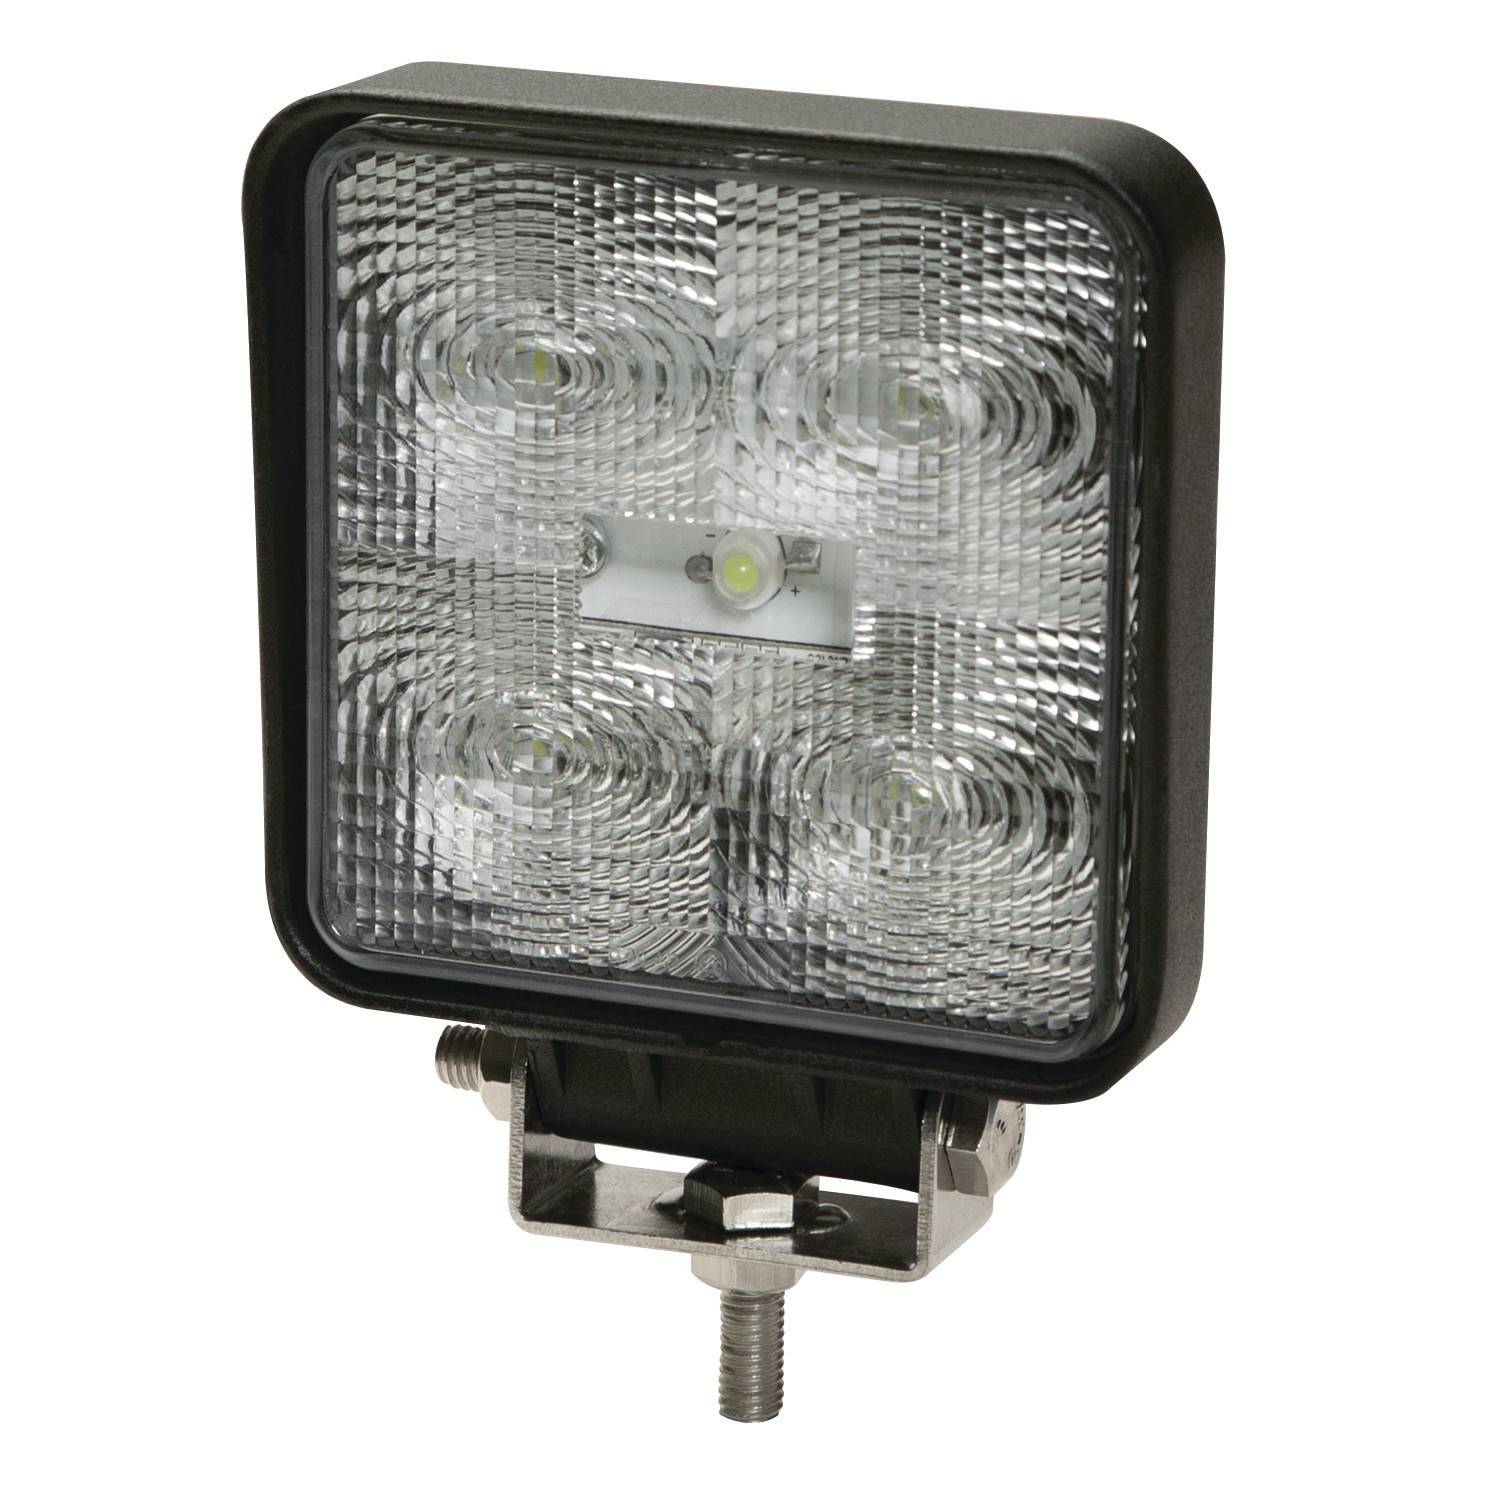 ECCO Square 5 LED Work Flood Lamp Light